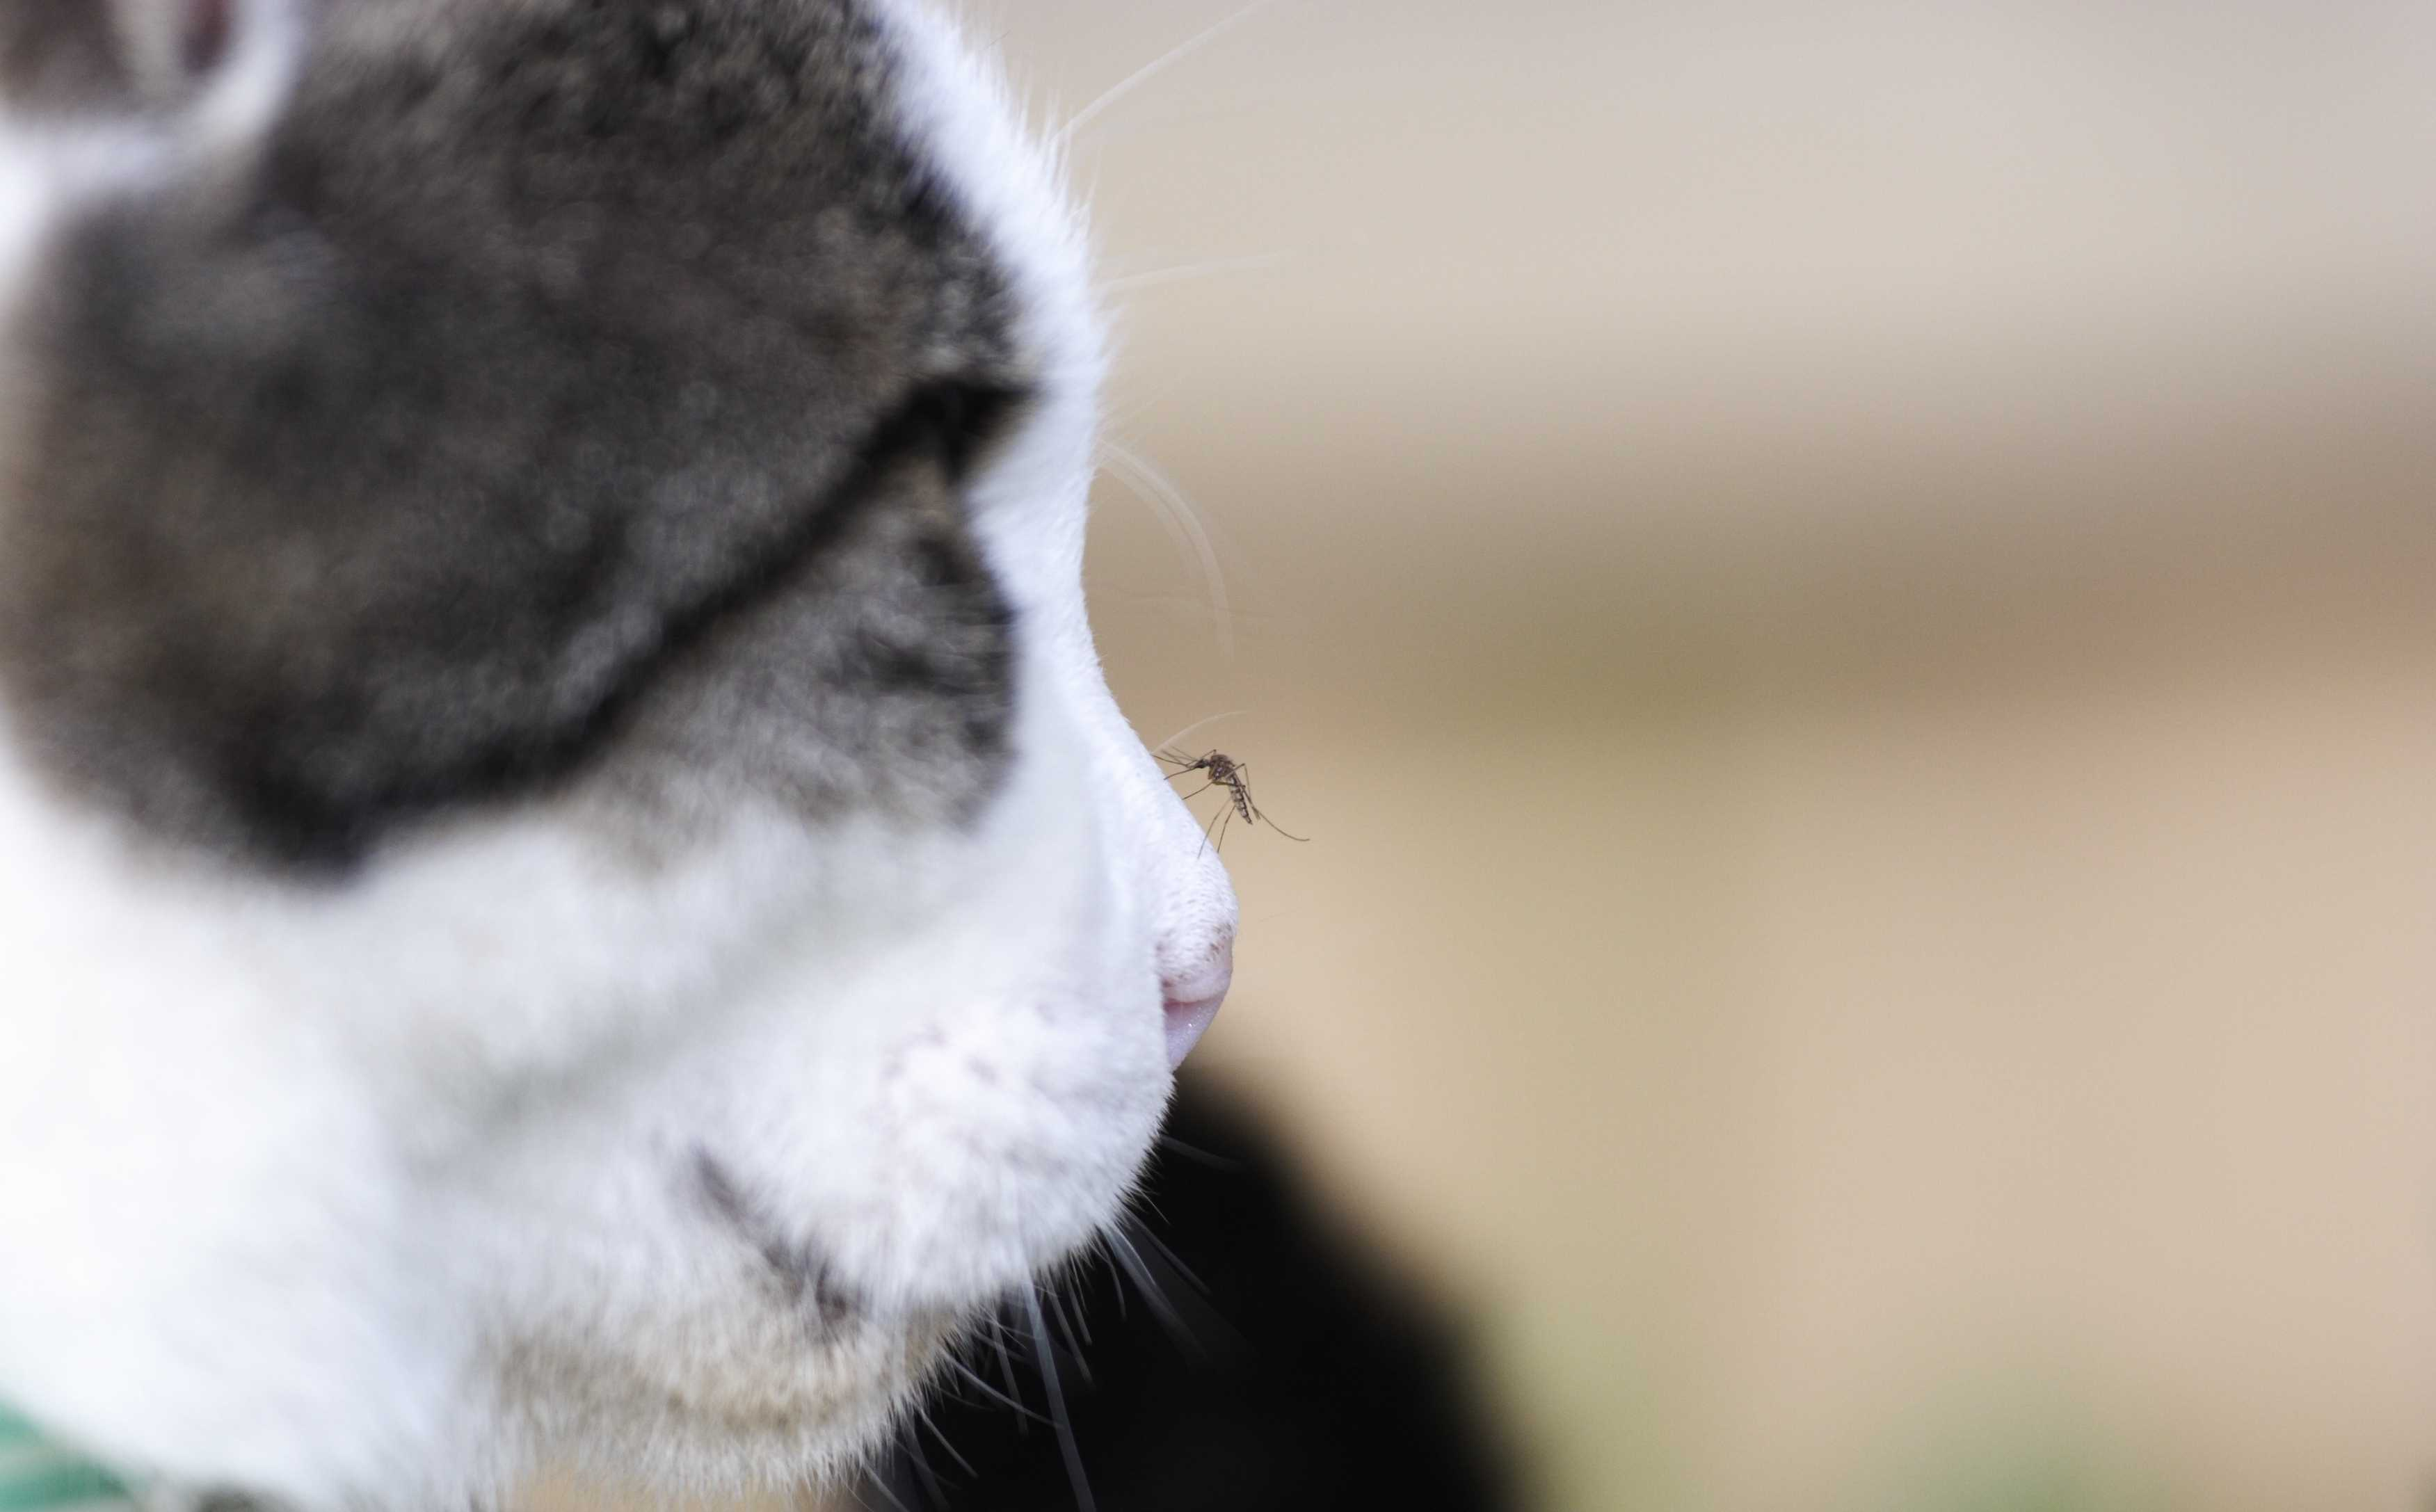 Mosquito on cat's nose